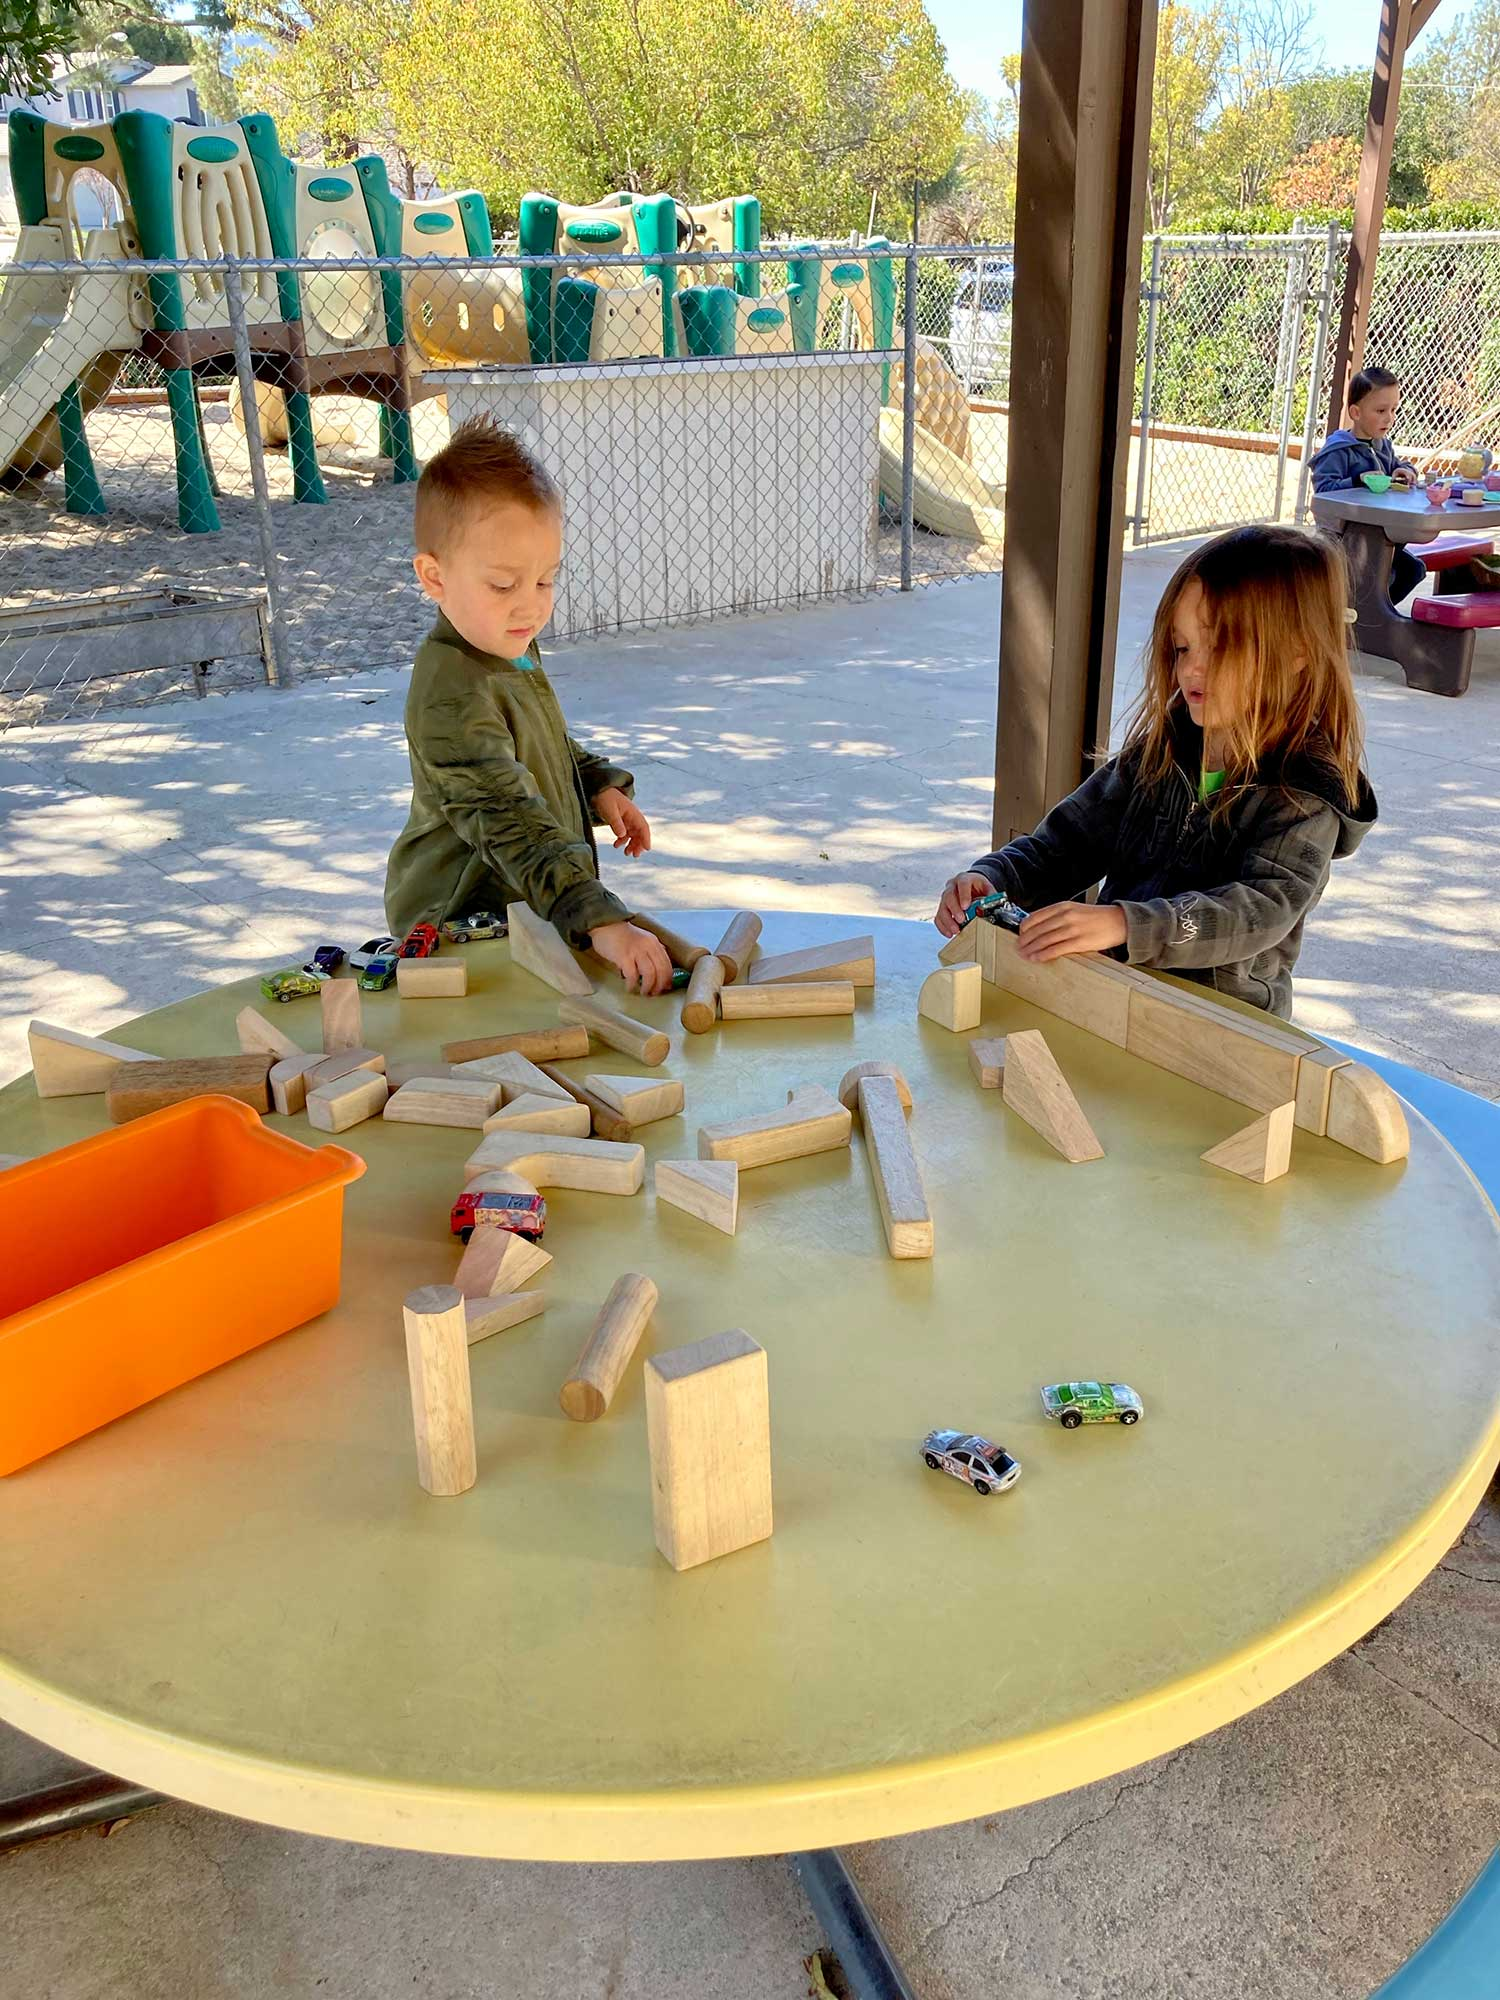 Girl and Boy Playing with Blocks and Cars on Outdoor Table